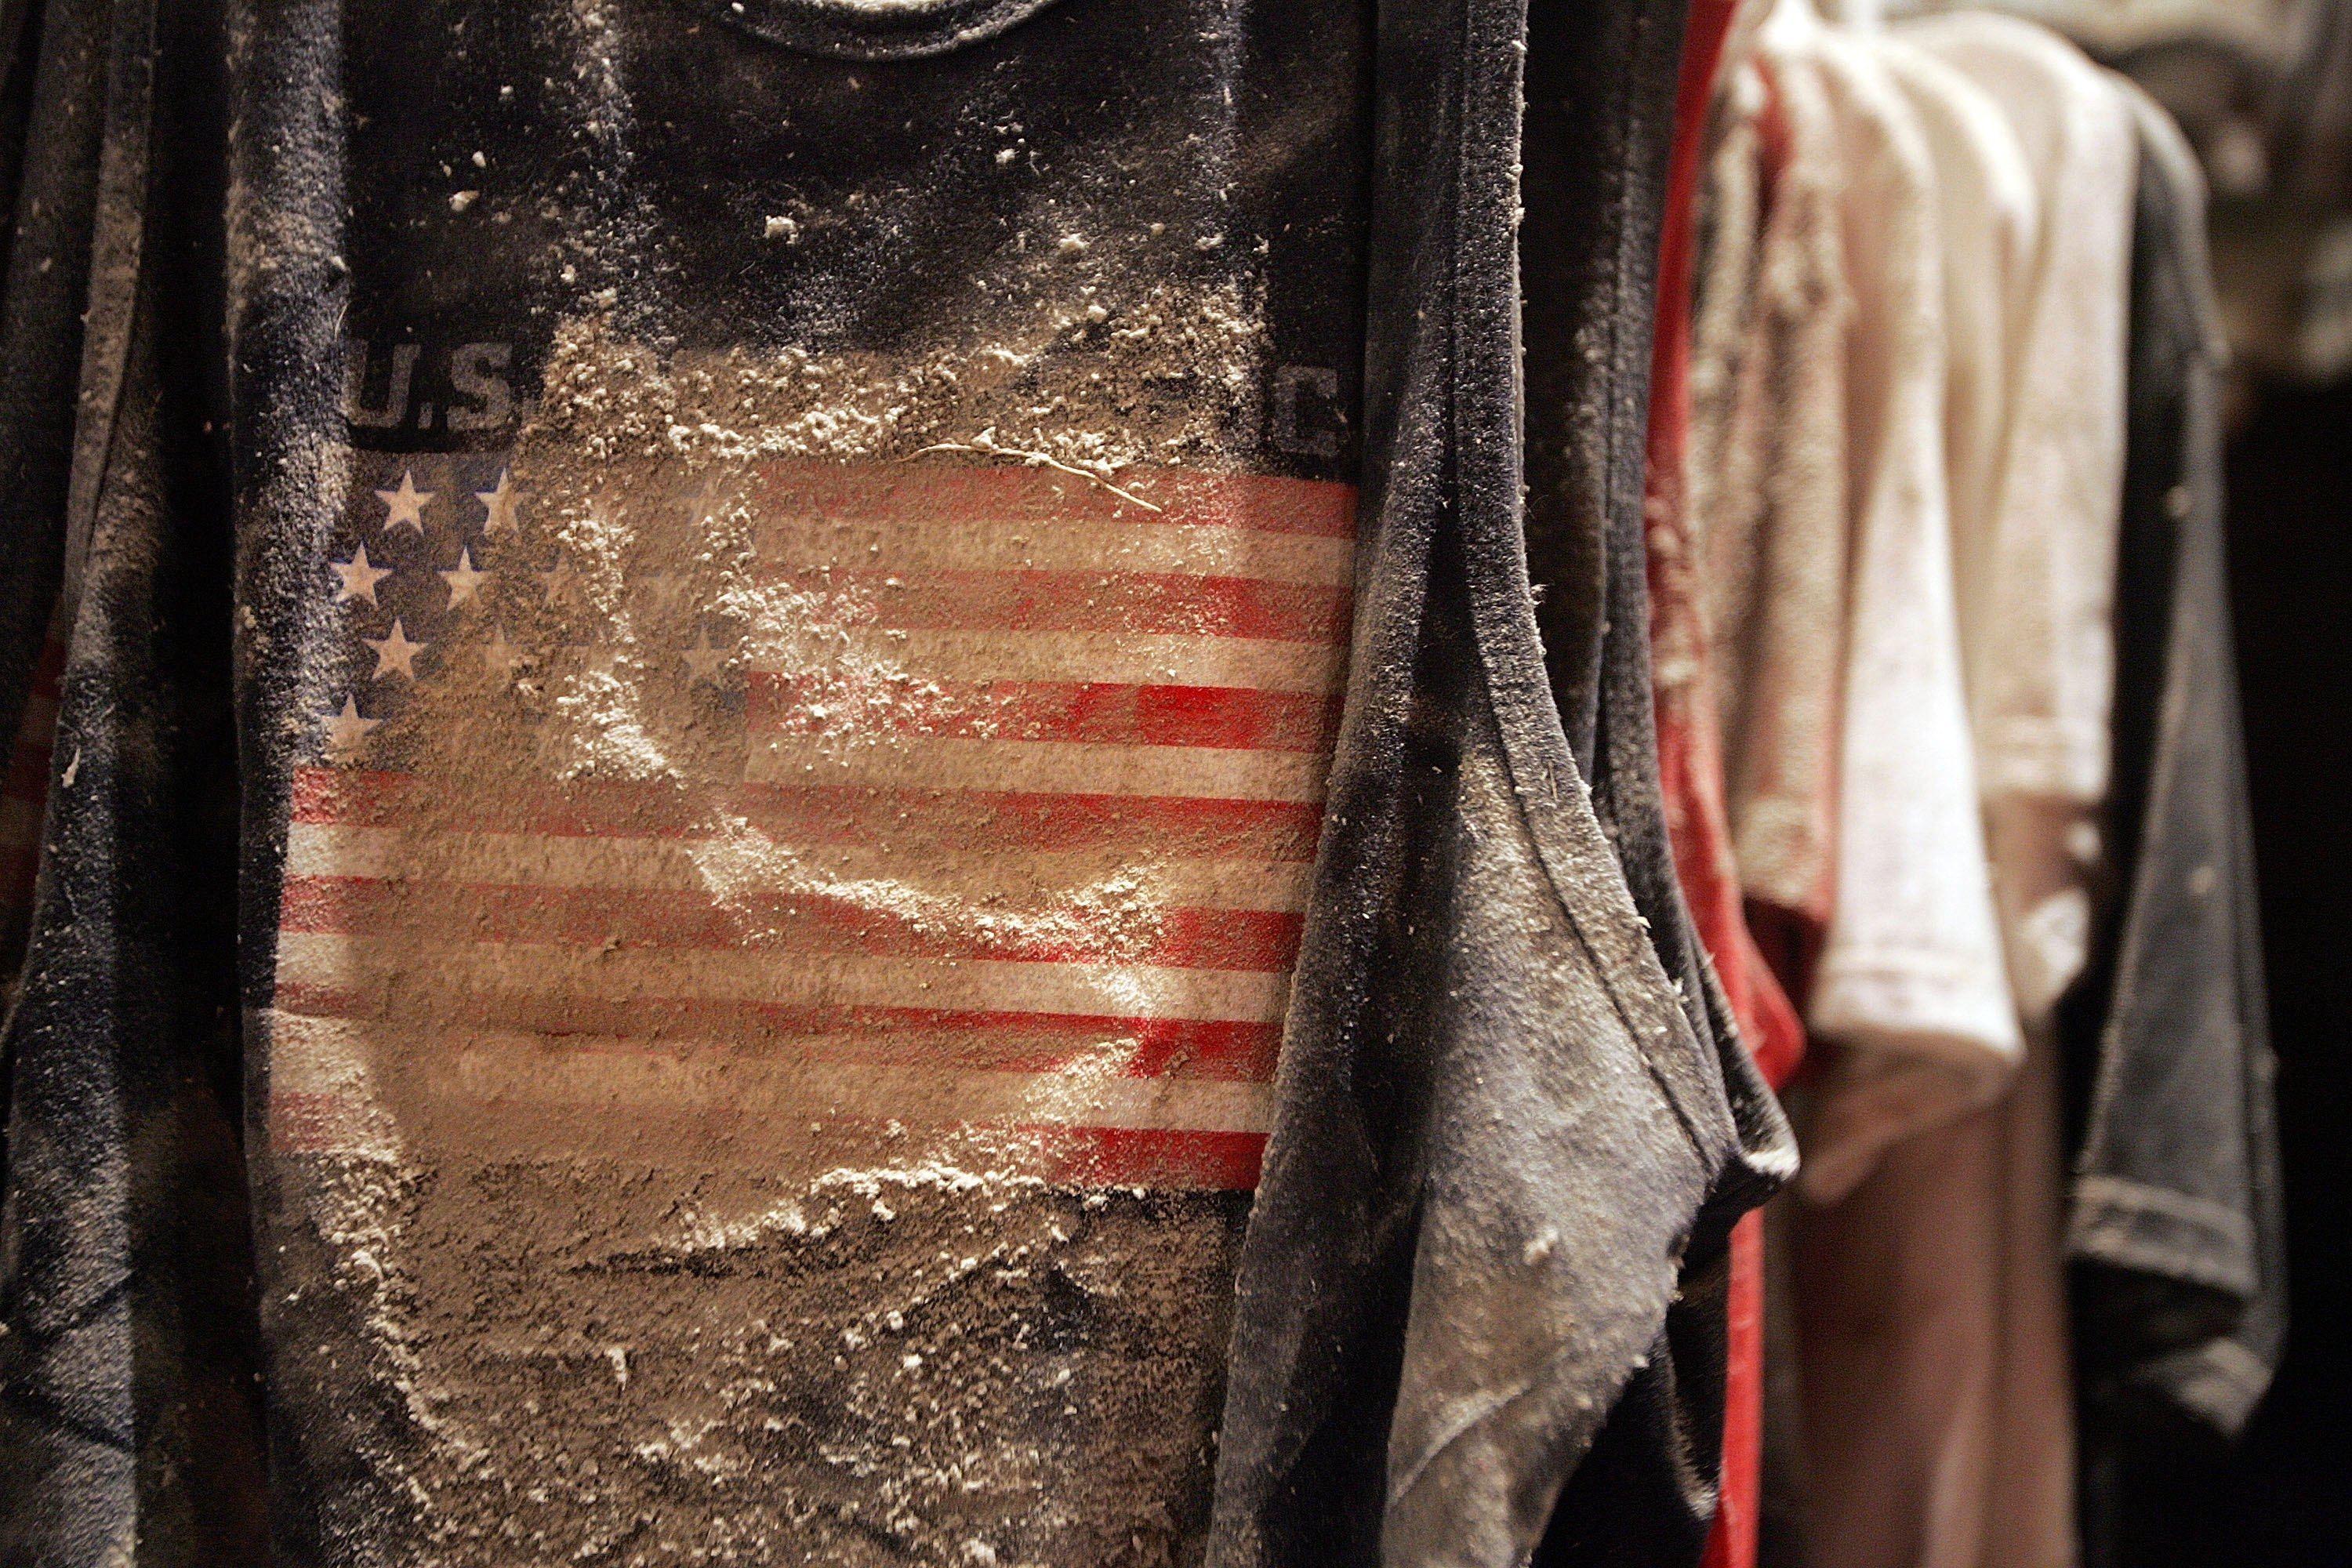 Artifacts From September 11 Permeate Fabric Of New York City